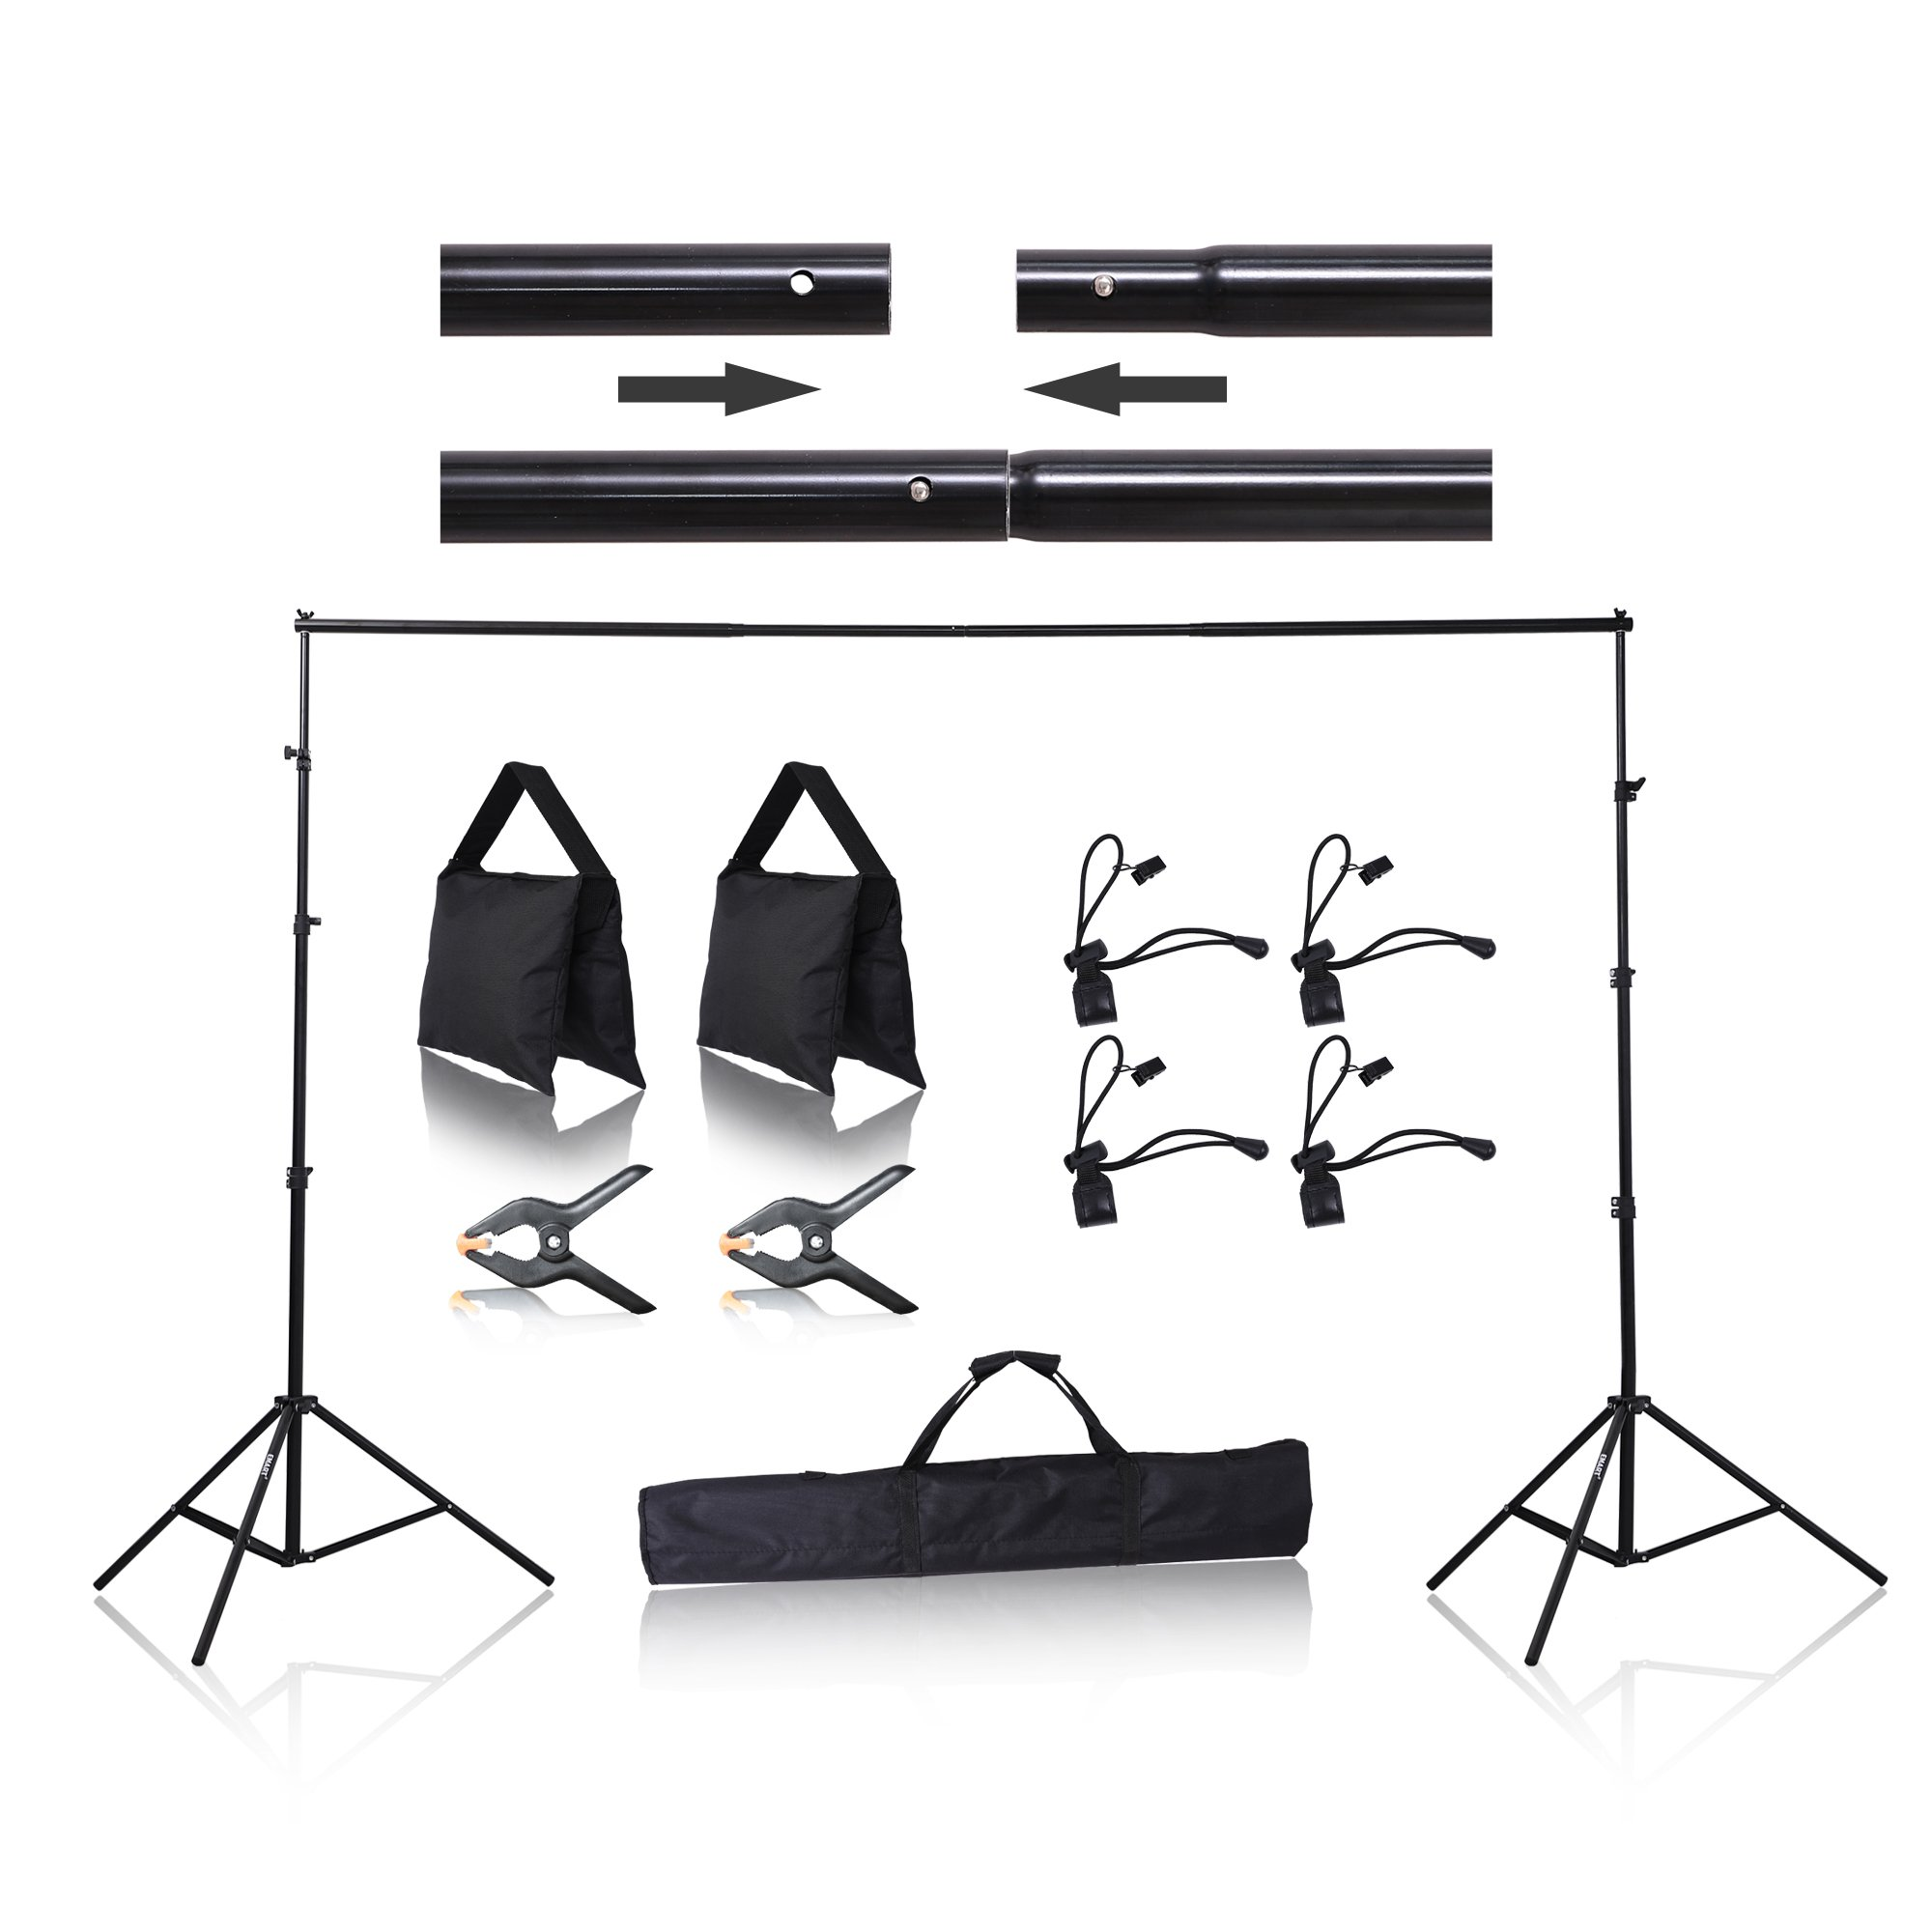 Emart 8.5 x 10 ft Photo Backdrop Stand, Adjustable Photography Muslin Background Support System Stand for Photo Video Studio by EMART